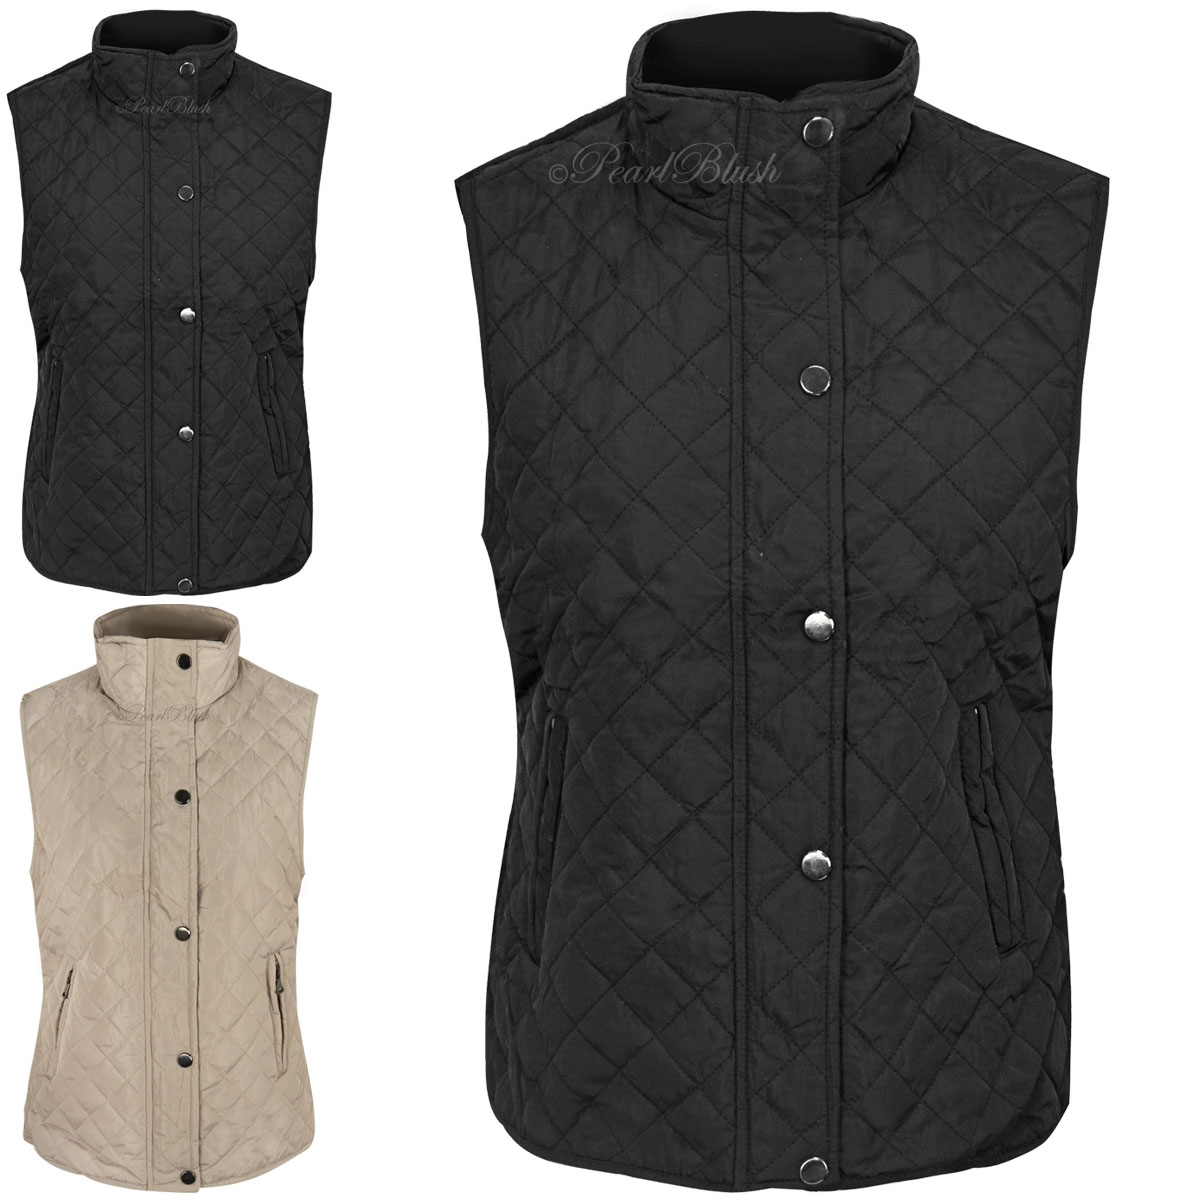 Women's Gilets & Body warmers The classic sleeveless bodywarmer is a must have item for any outdoor enthusiast. If you want an extra layer of protection against the elements, our women's bodywarmers can provide extra warmth where and when you need it the most.